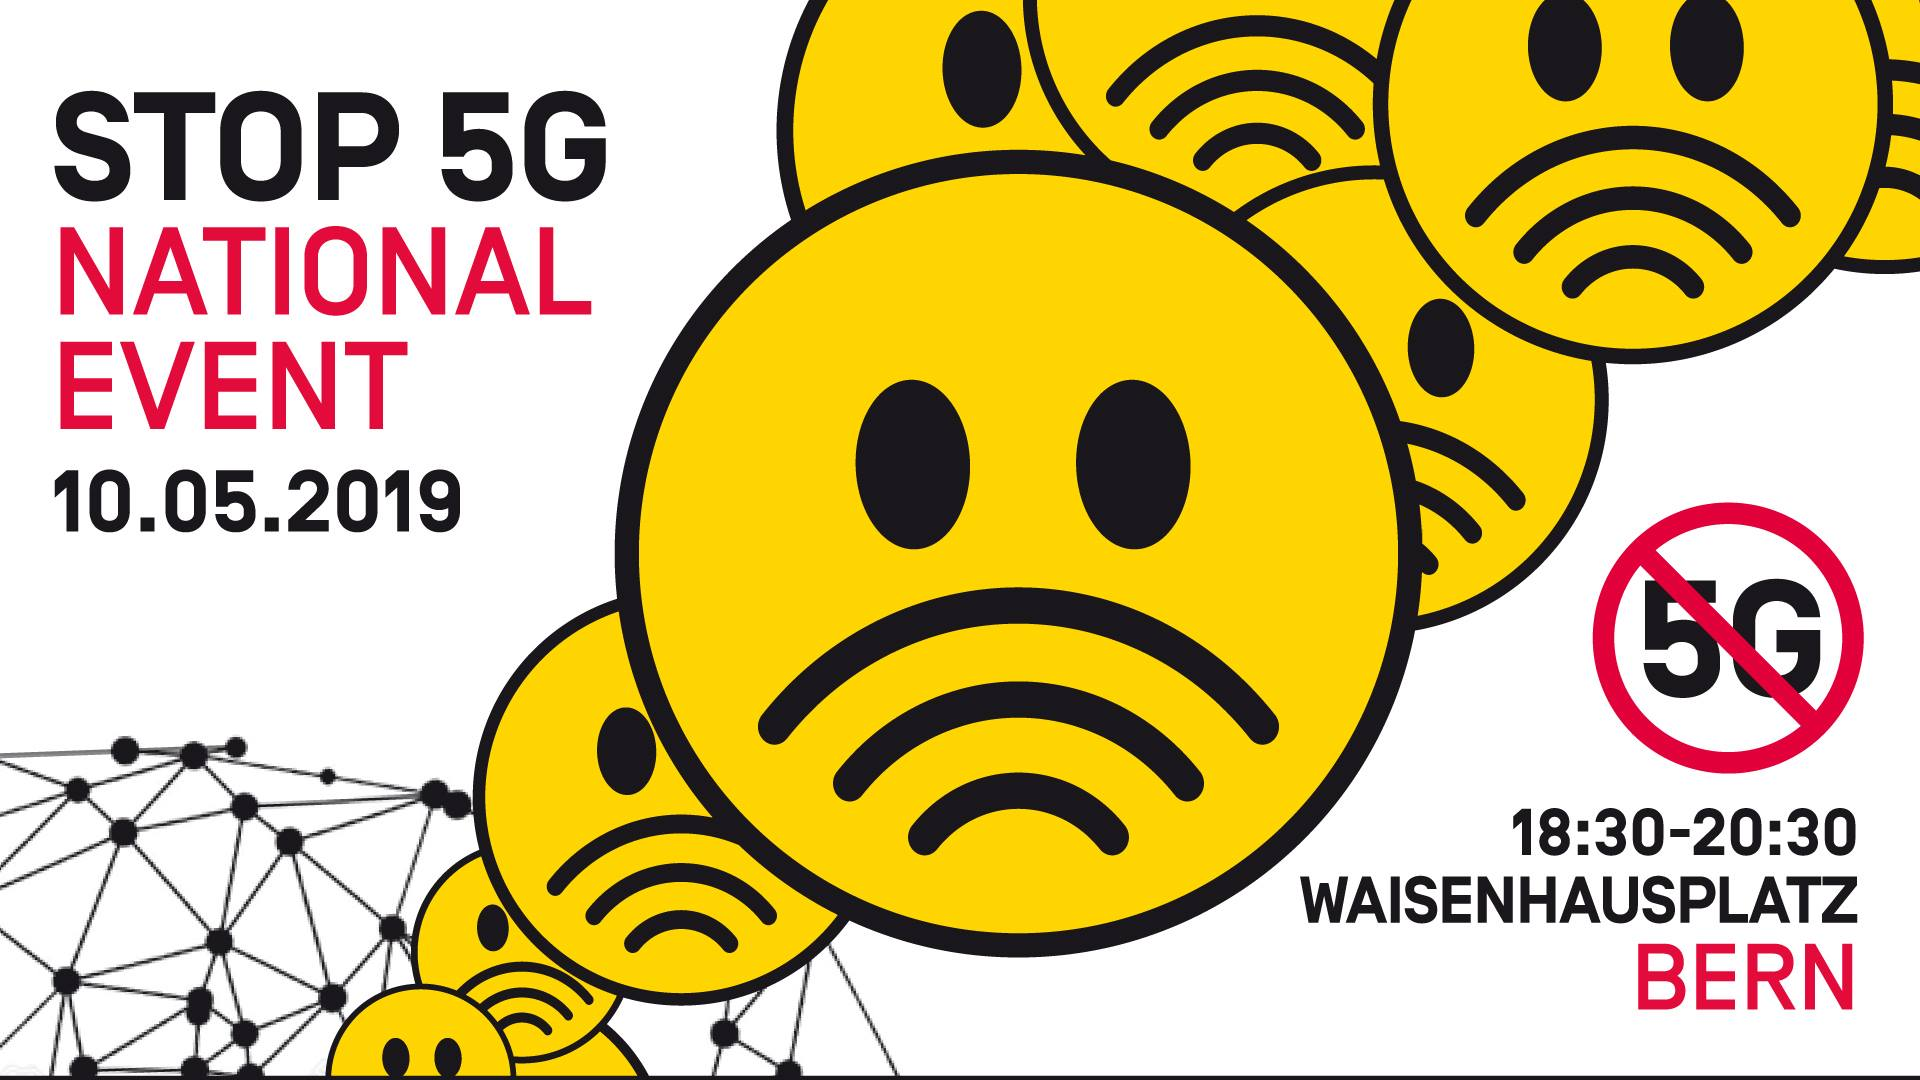 5G Demo Bern 21. September 2019